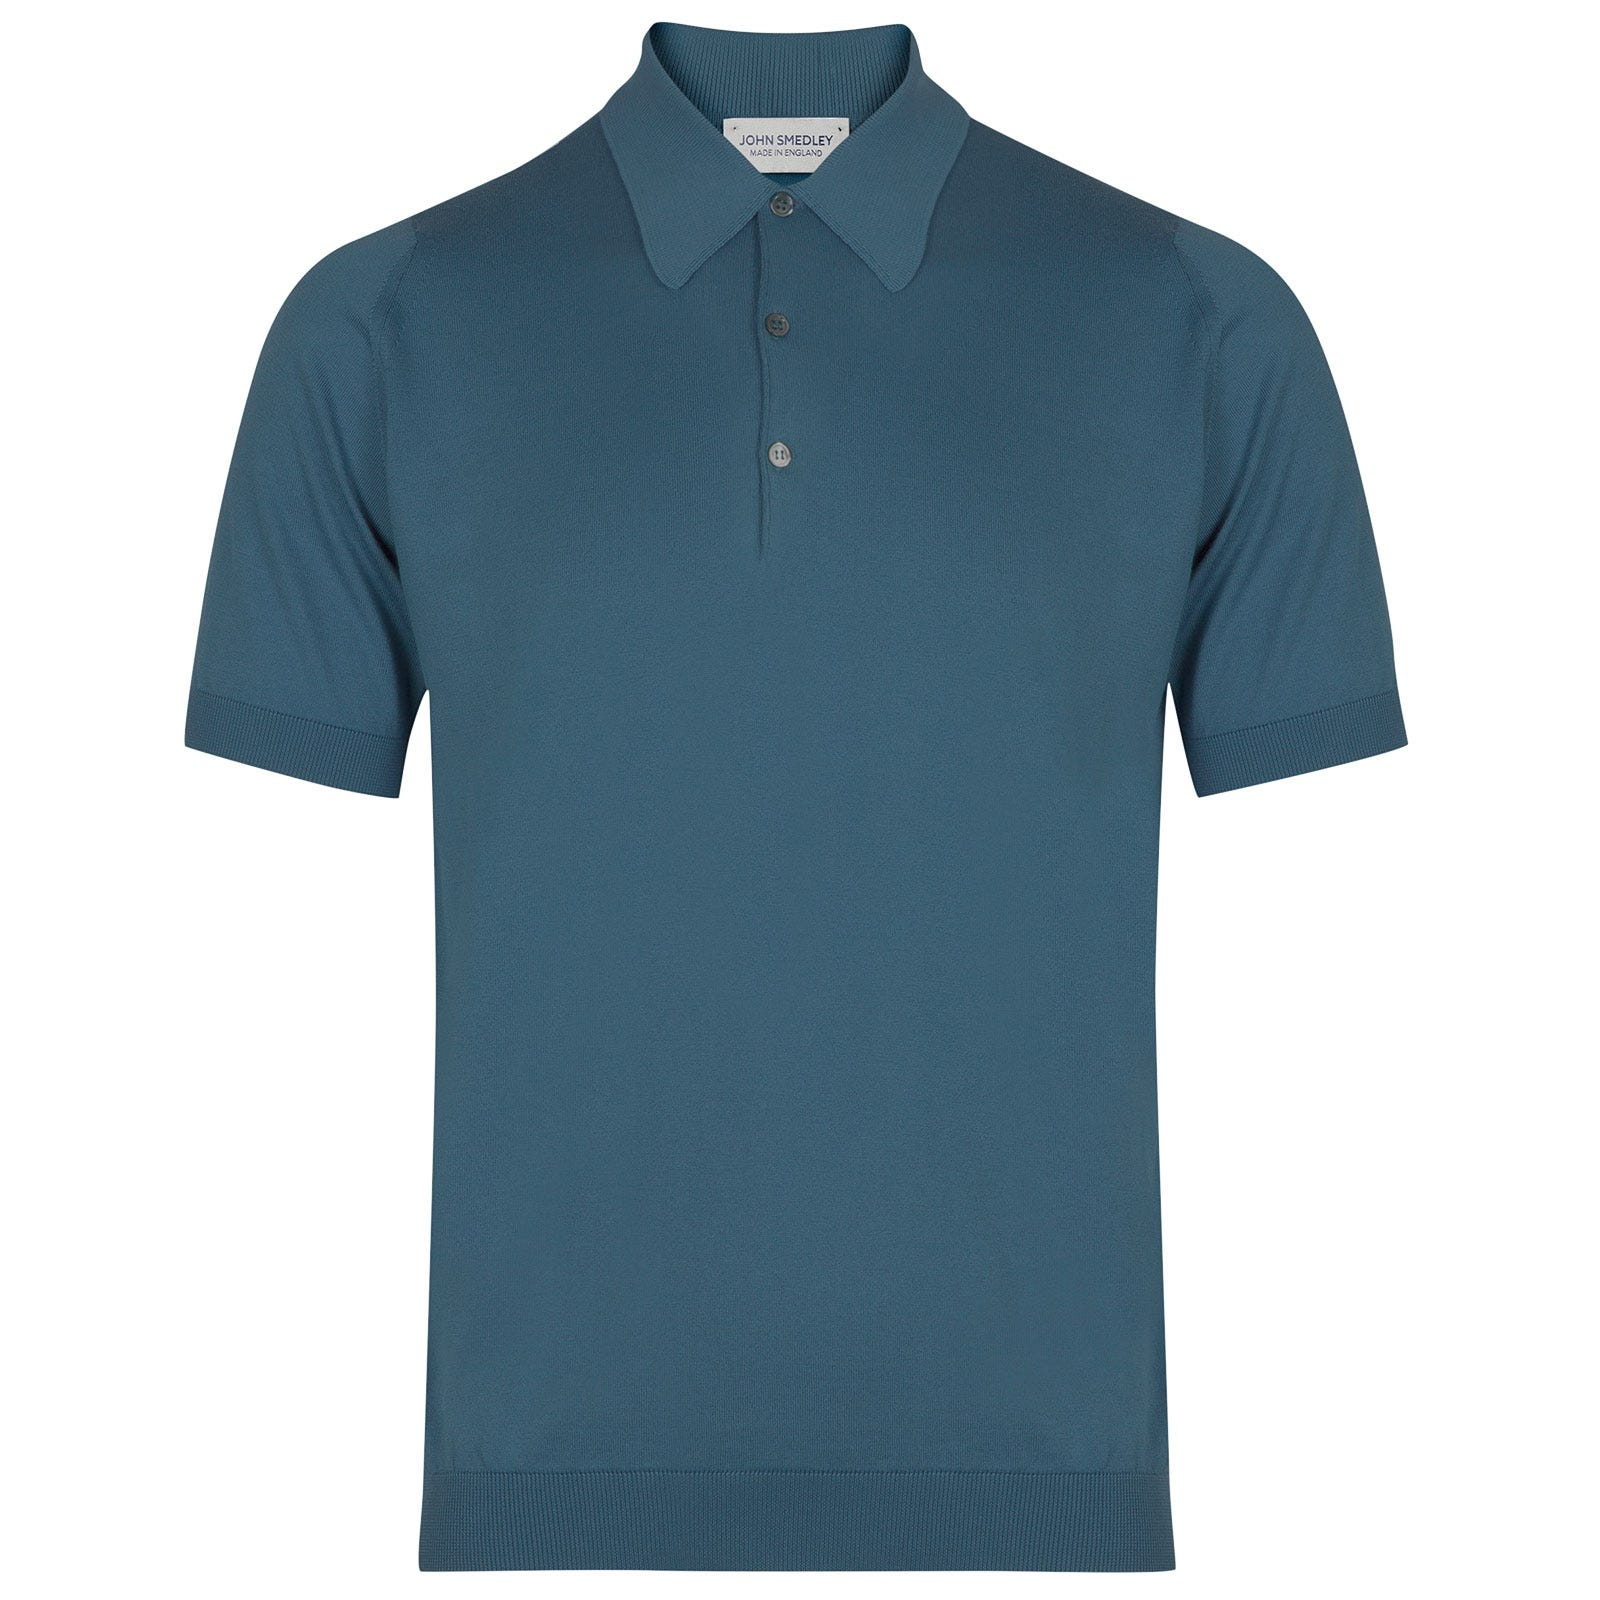 John Smedley Isis Sea Island Cotton Shirt in Bias Blue-M